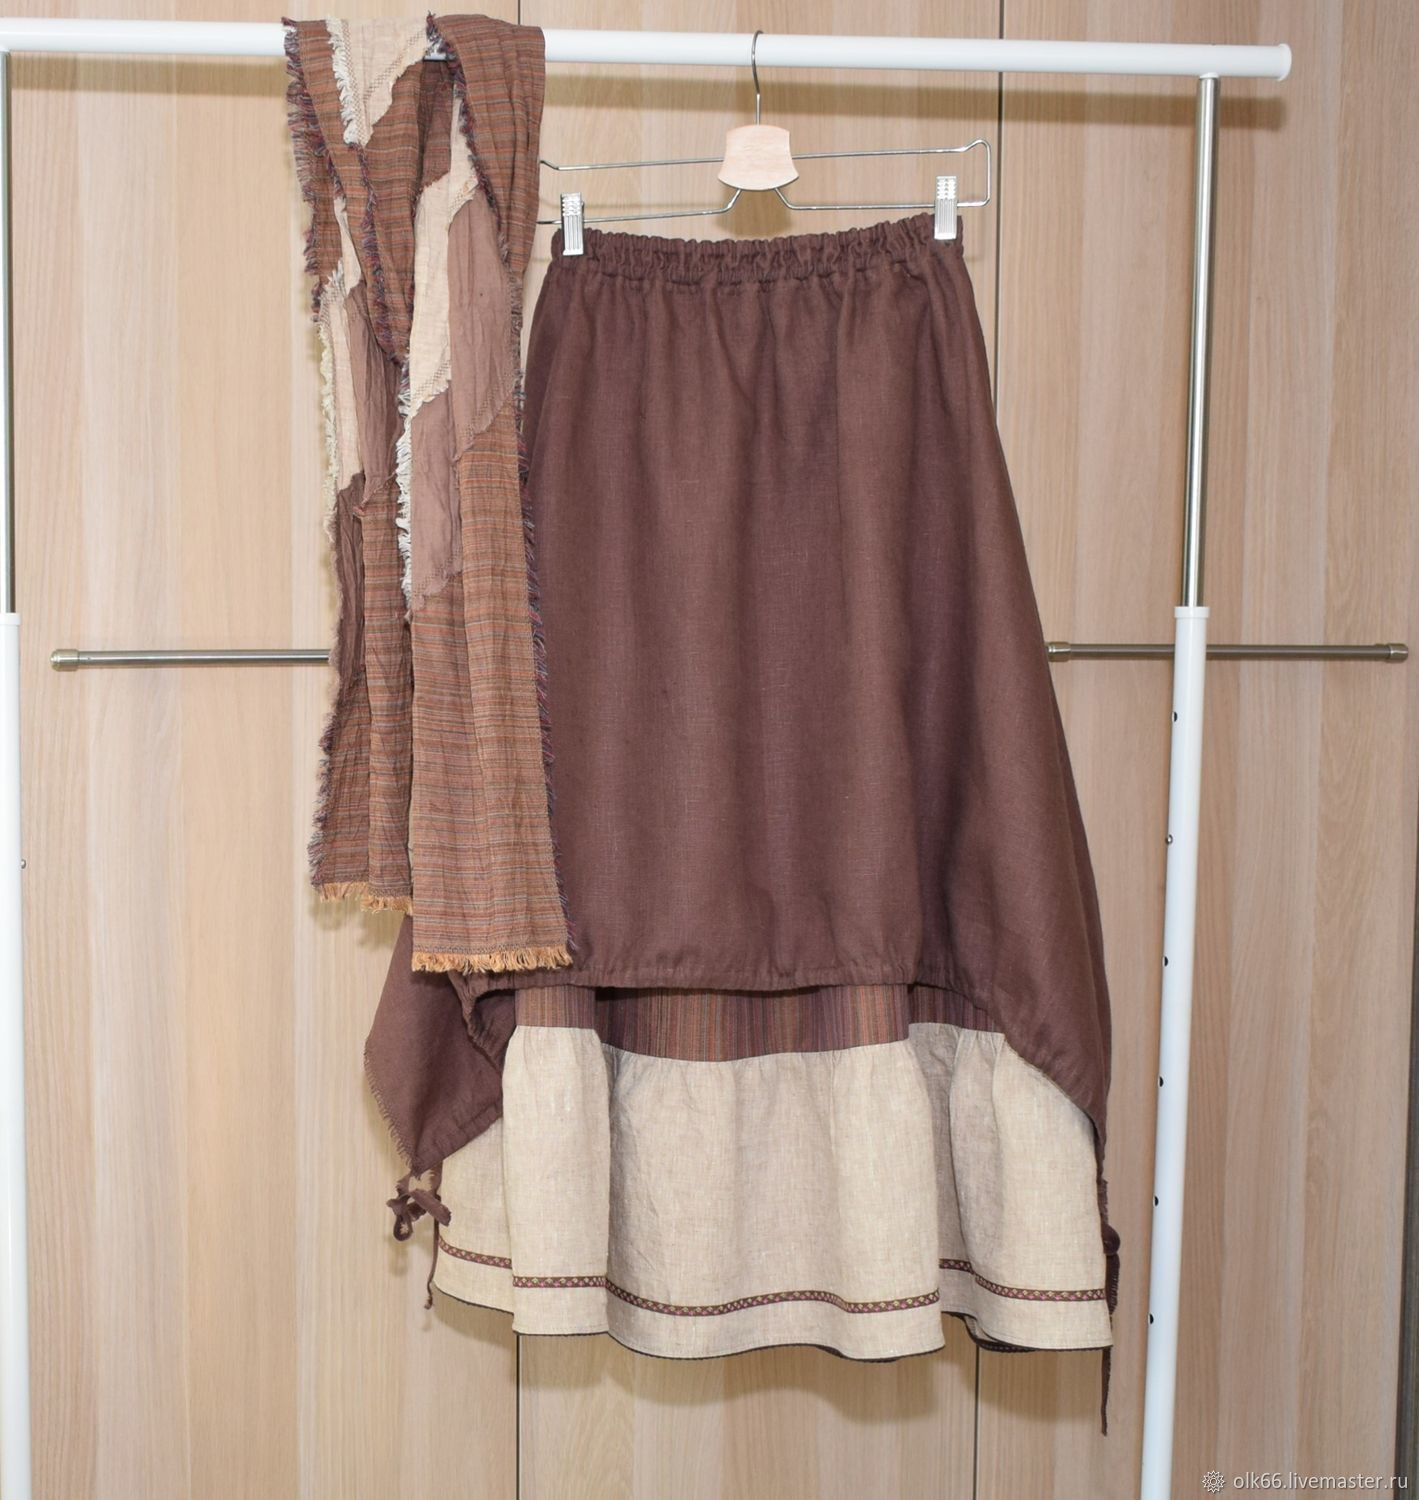 skirt boho linen skirt, boho skirt linen, skirt in boho style, linen clothing, boho style, boho long skirt, linen long skirt, long skirt, summer skirt, large size skirt, big size, s